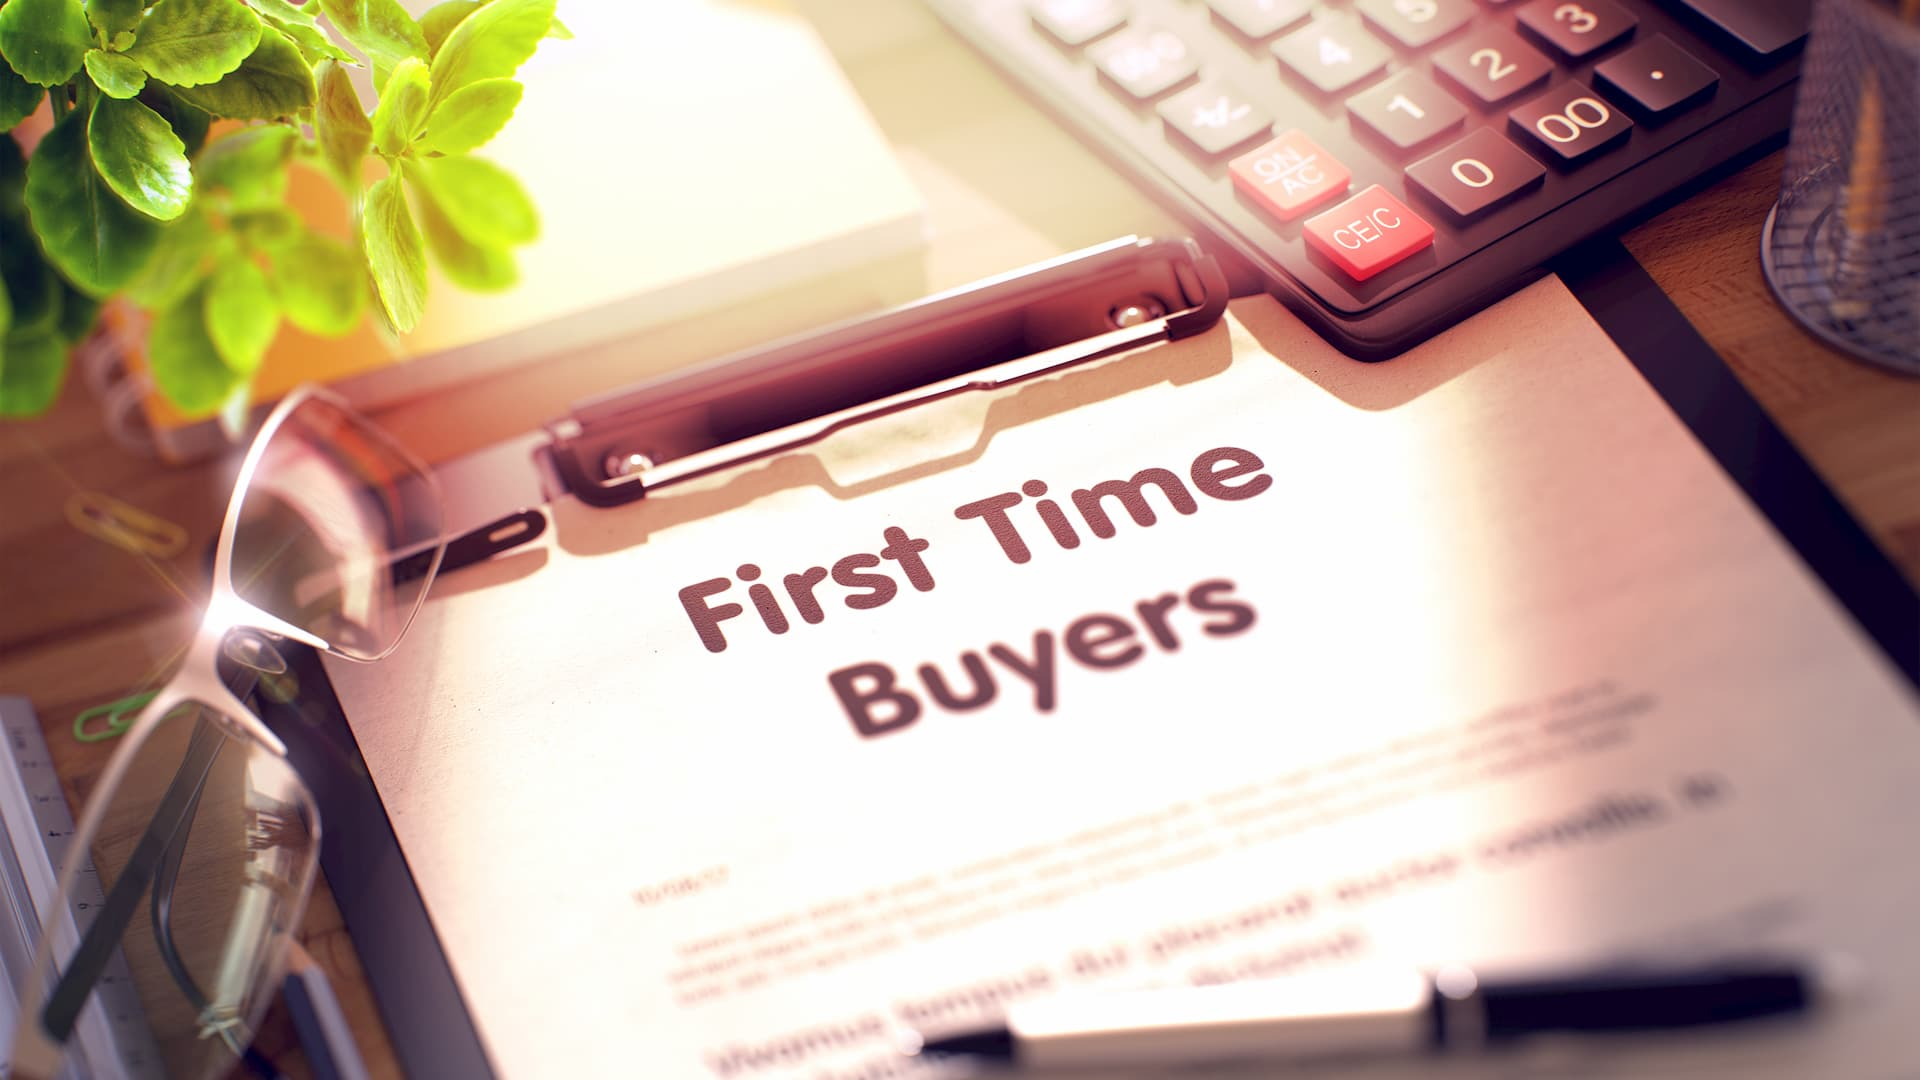 First time buyers contract